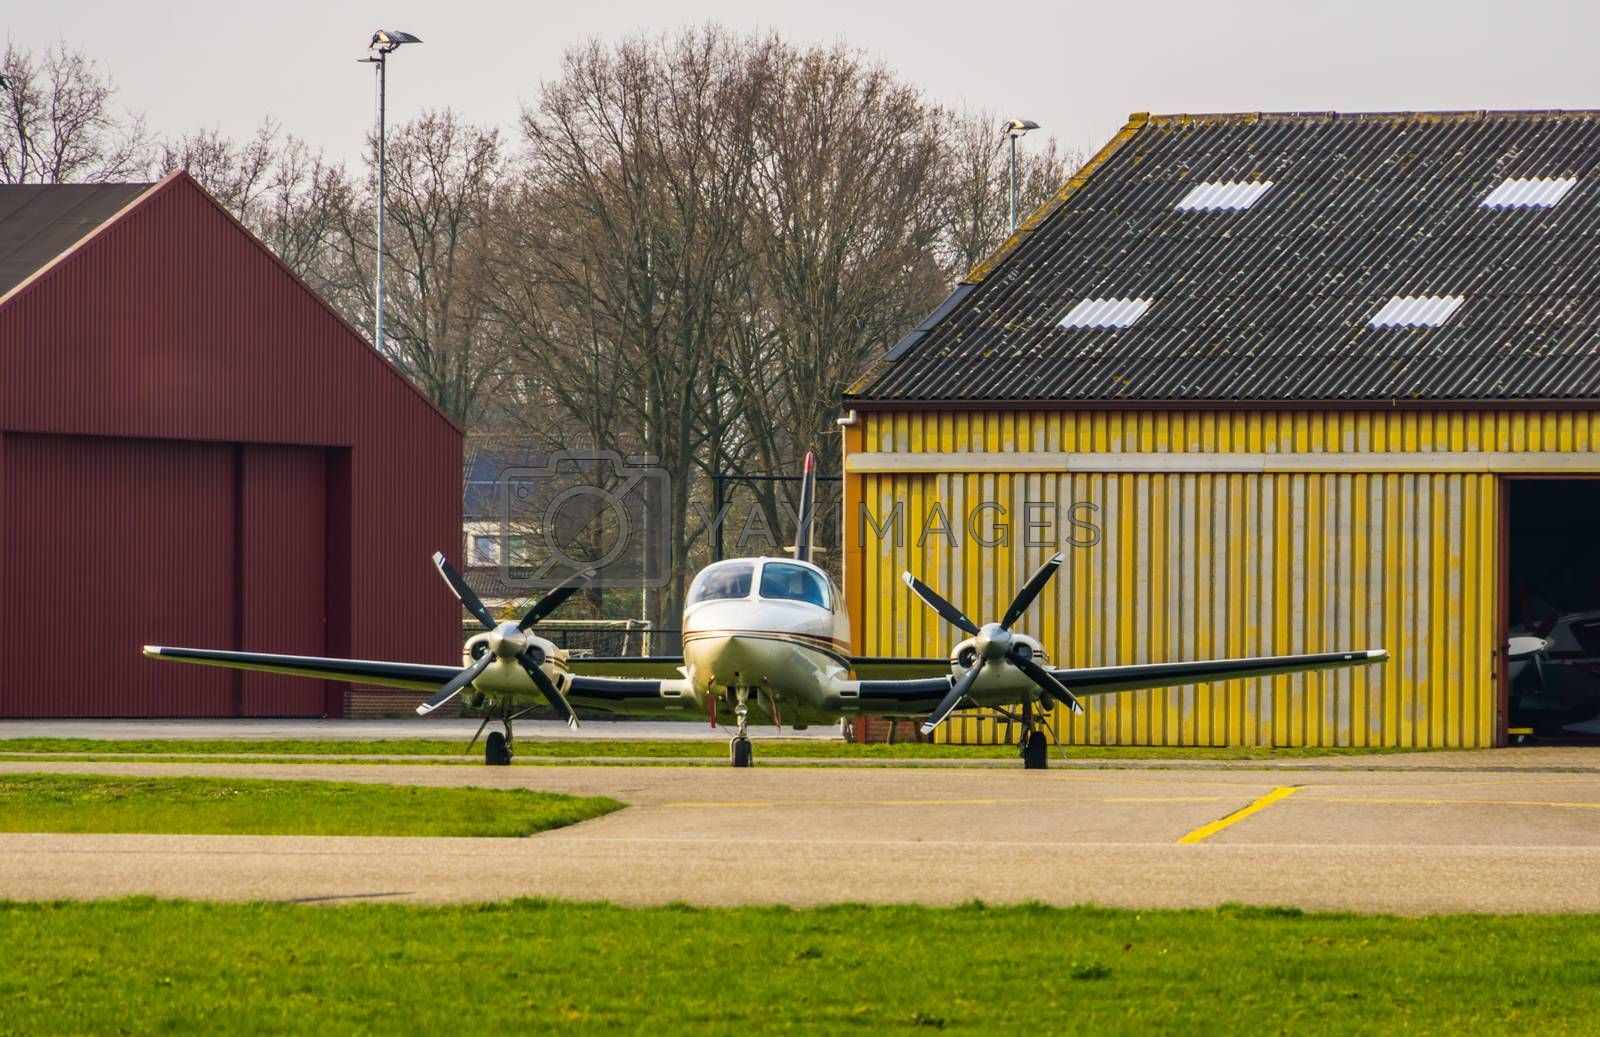 parked air plane at the airport front view, air transportation background